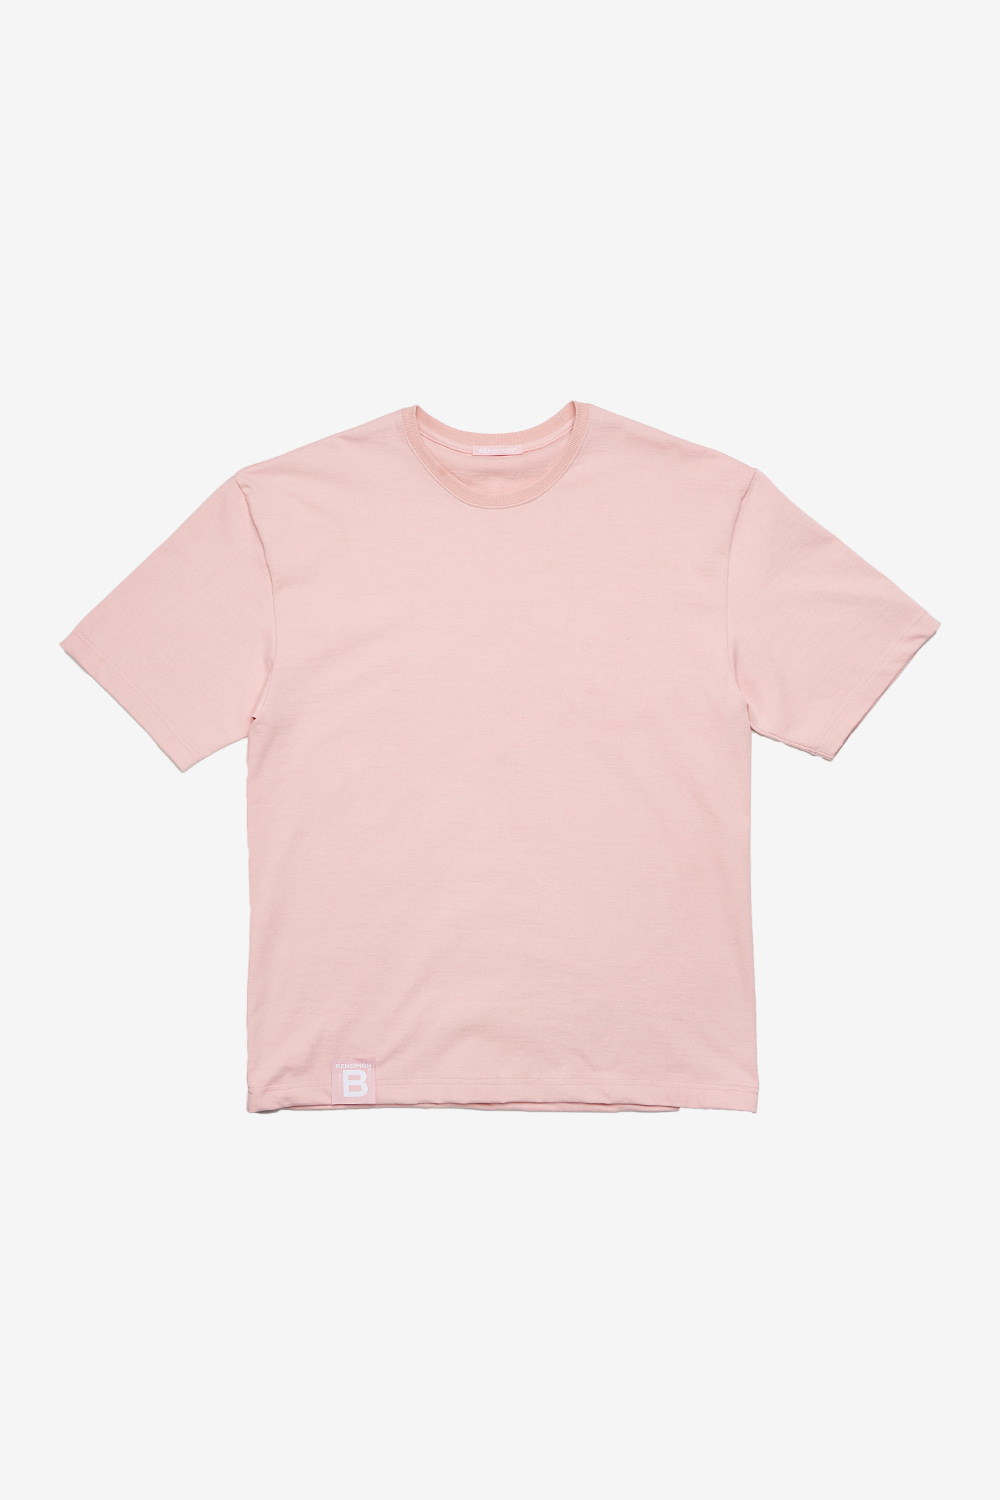 Original Label Over T(unisex)_Pink BS0STS205PK00F